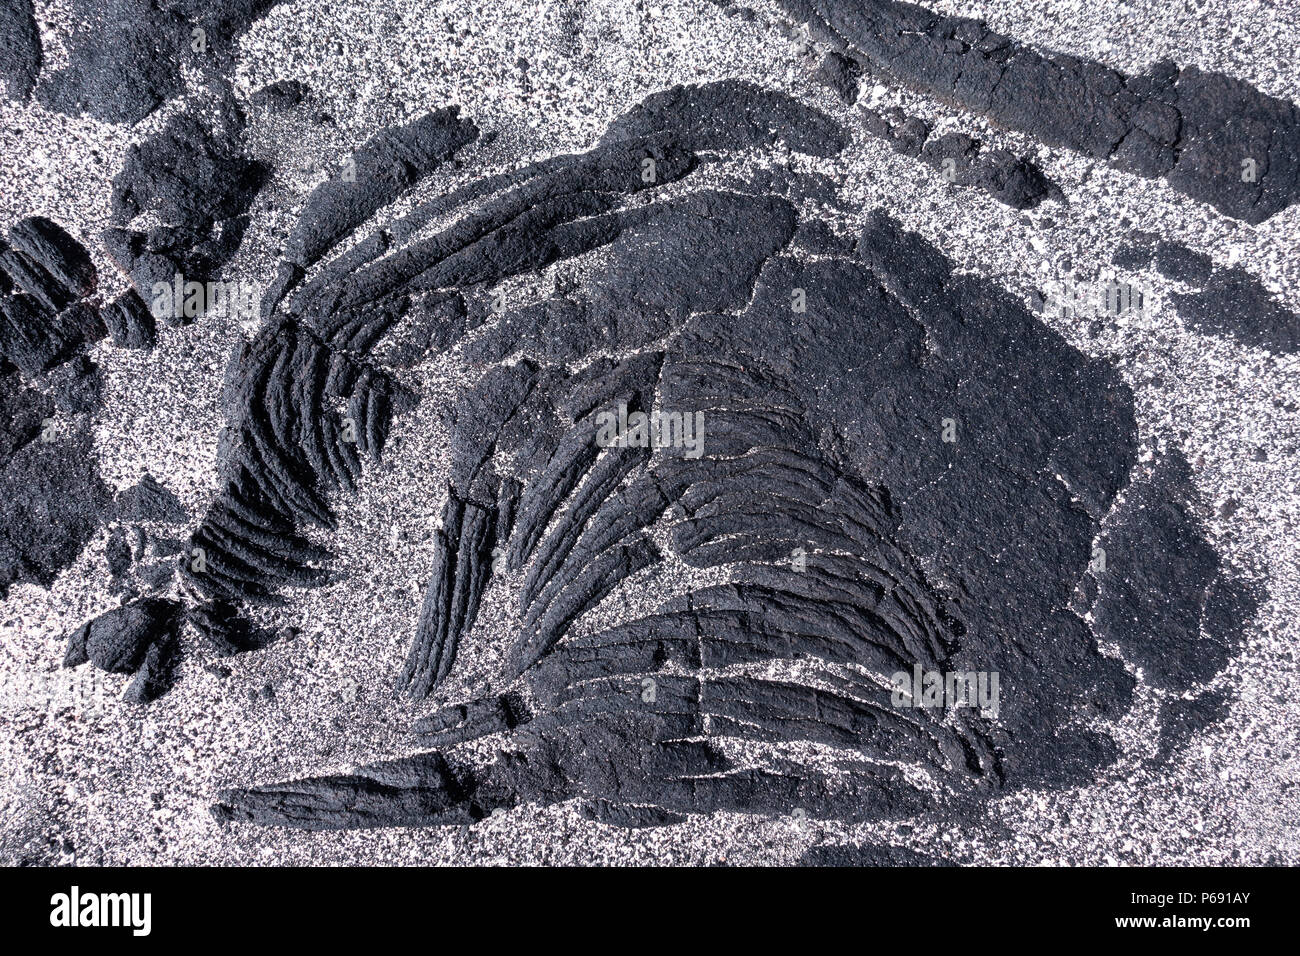 Lava with sand detail - Stock Image